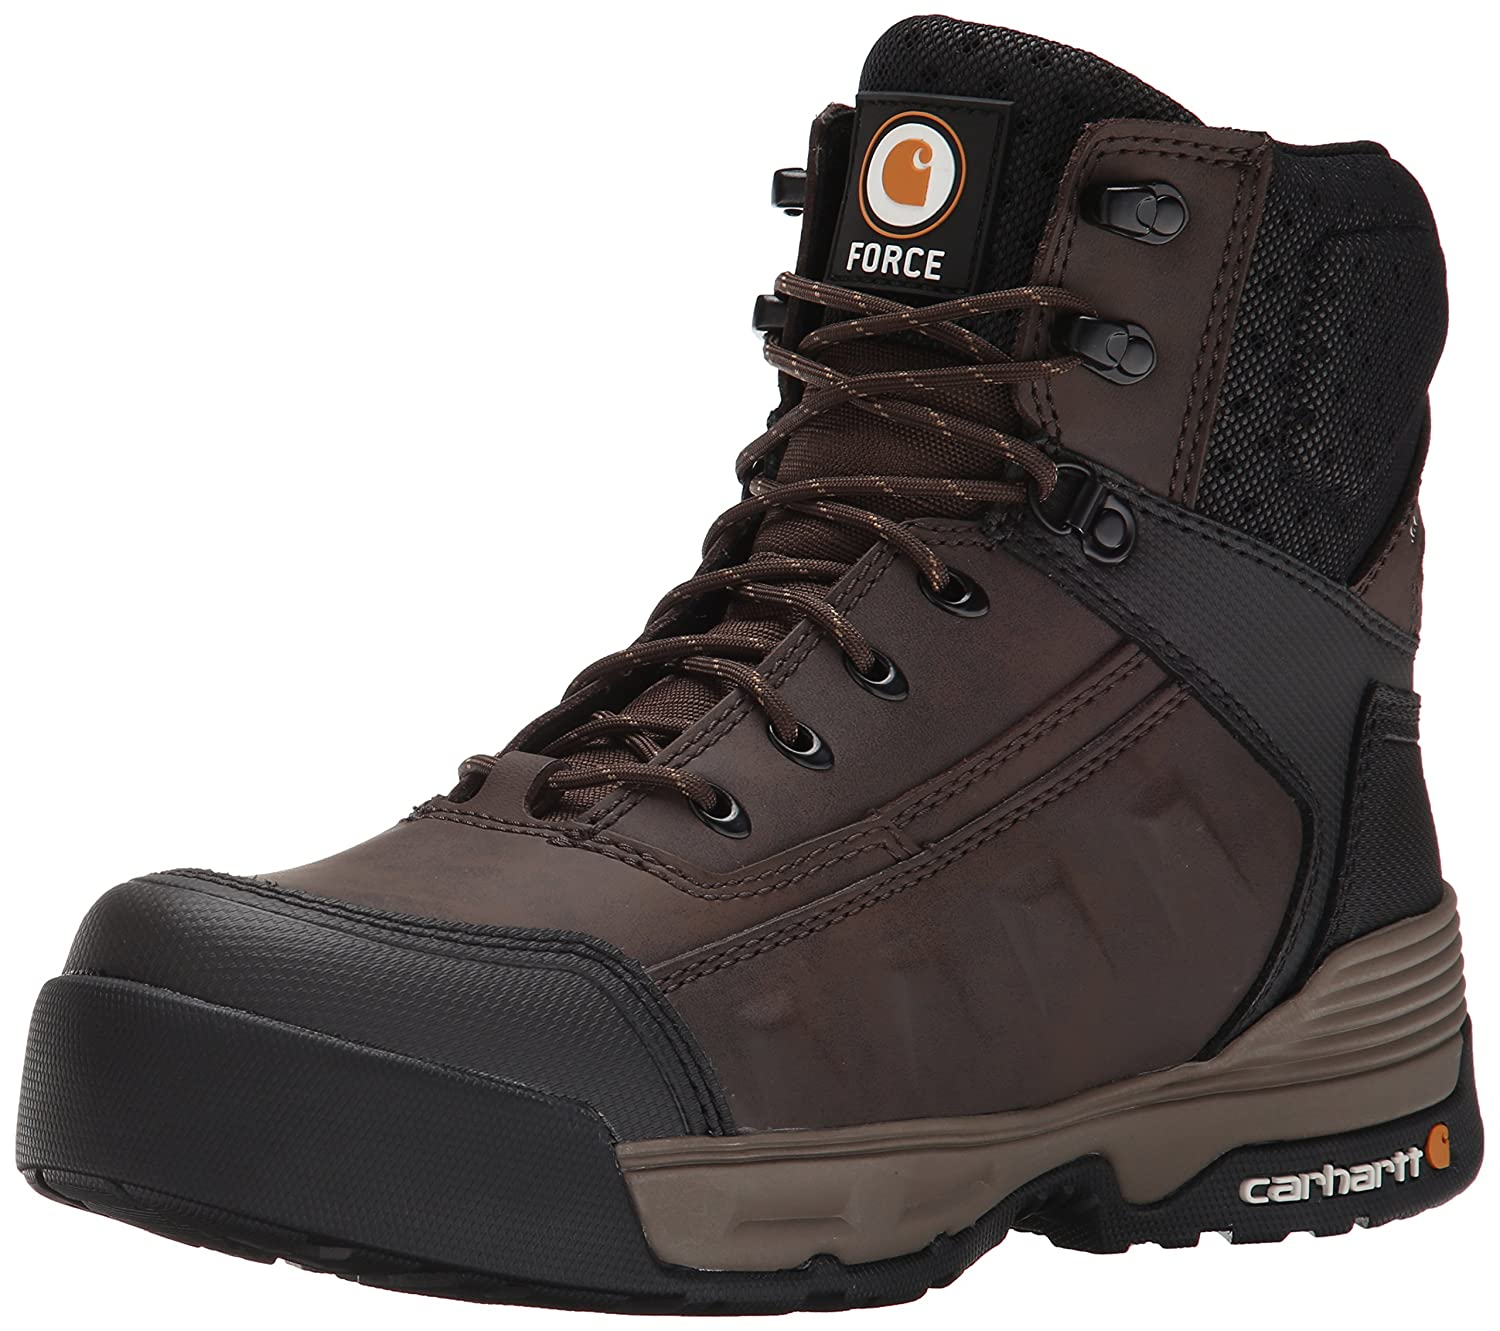 Carhartt メンズ Brown Coated Leather 8.5 D(M) US 8.5 D(M) USBrown Coated Leather B00OBX15G0